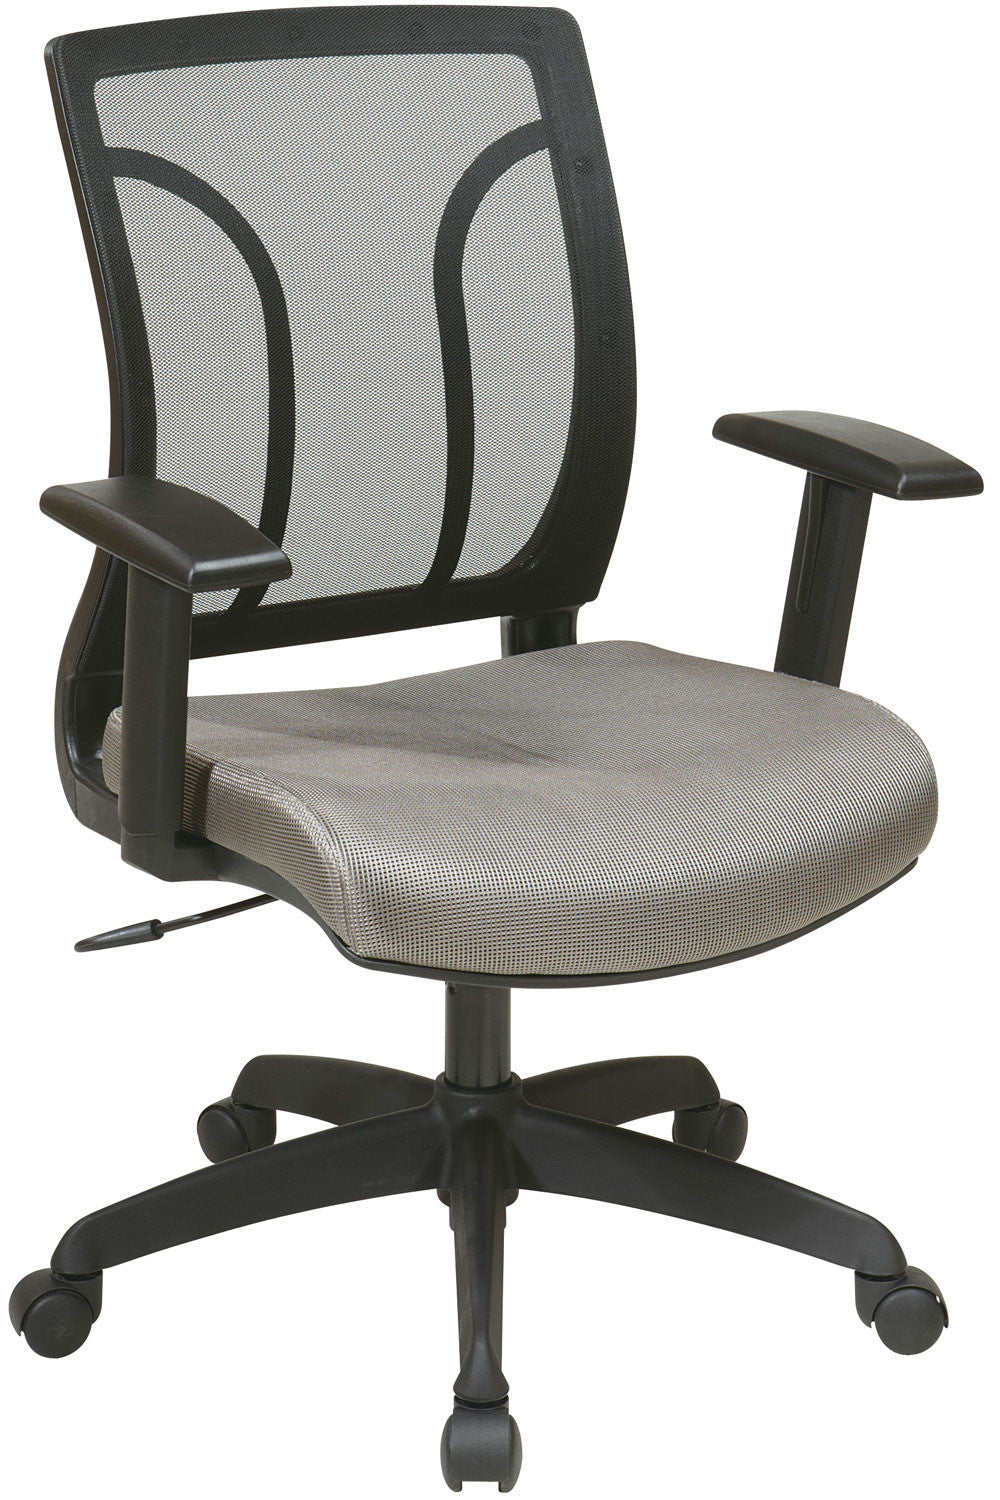 Office Star Work Smart EM50727-2 Screen Back Chair with Mesh Seat with Height Adjustable Arms - C Grade - Ratio - Storm -946 OSP-EM50727-C - 05